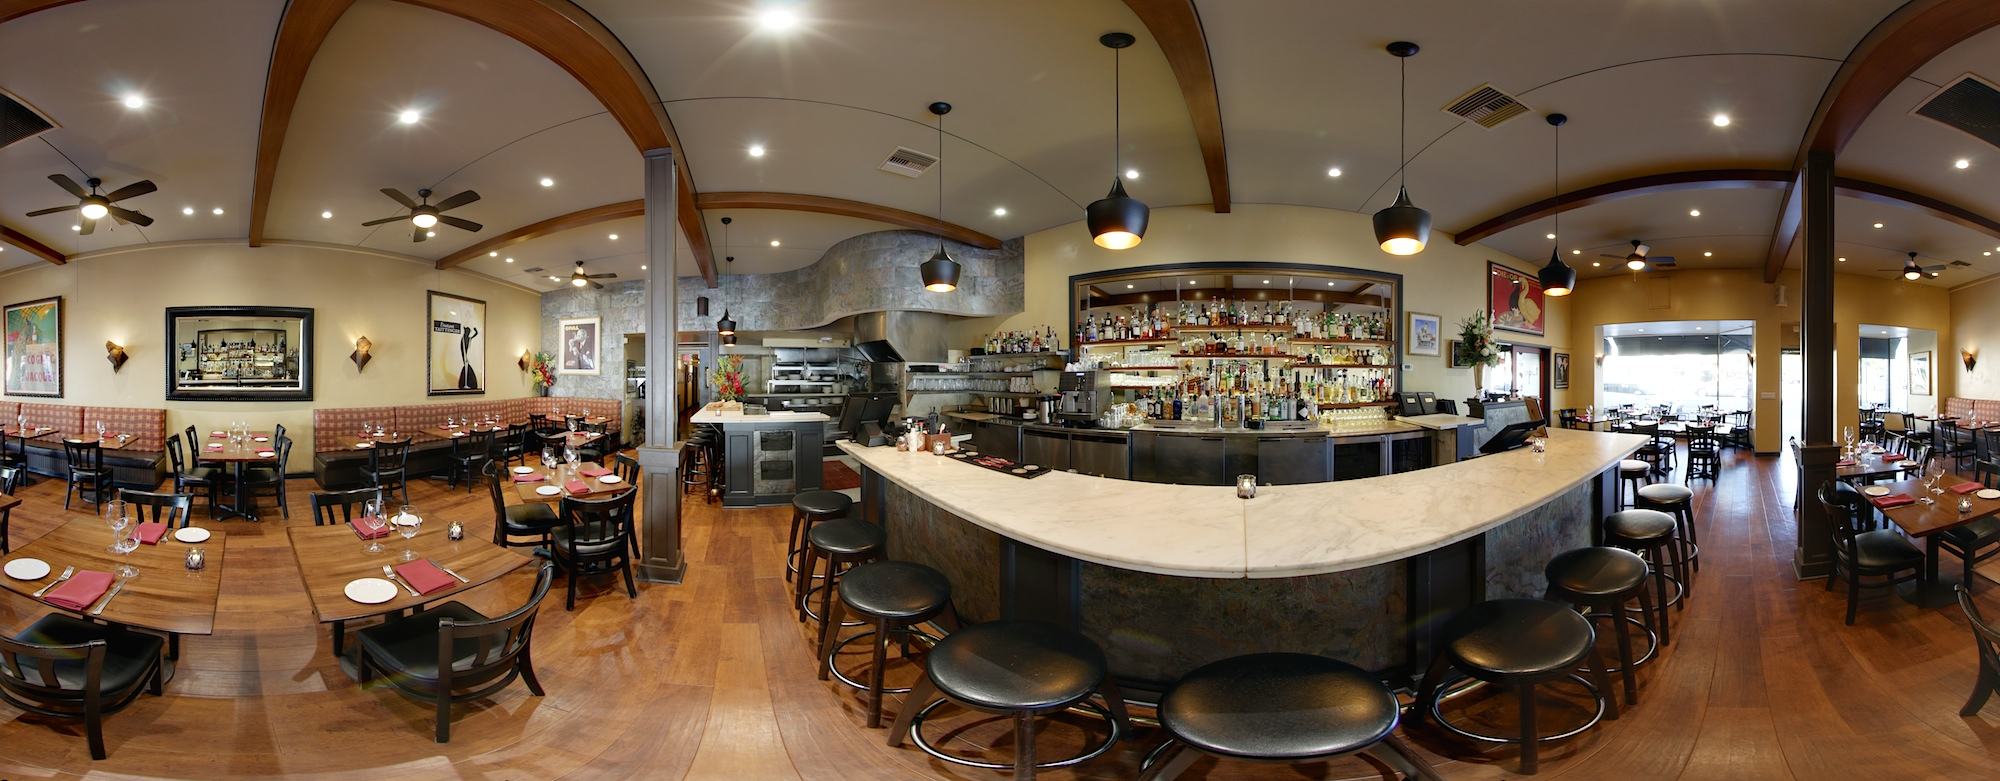 Visit Opal restaurant with the new 2019 Google virtual tour on Google Street View